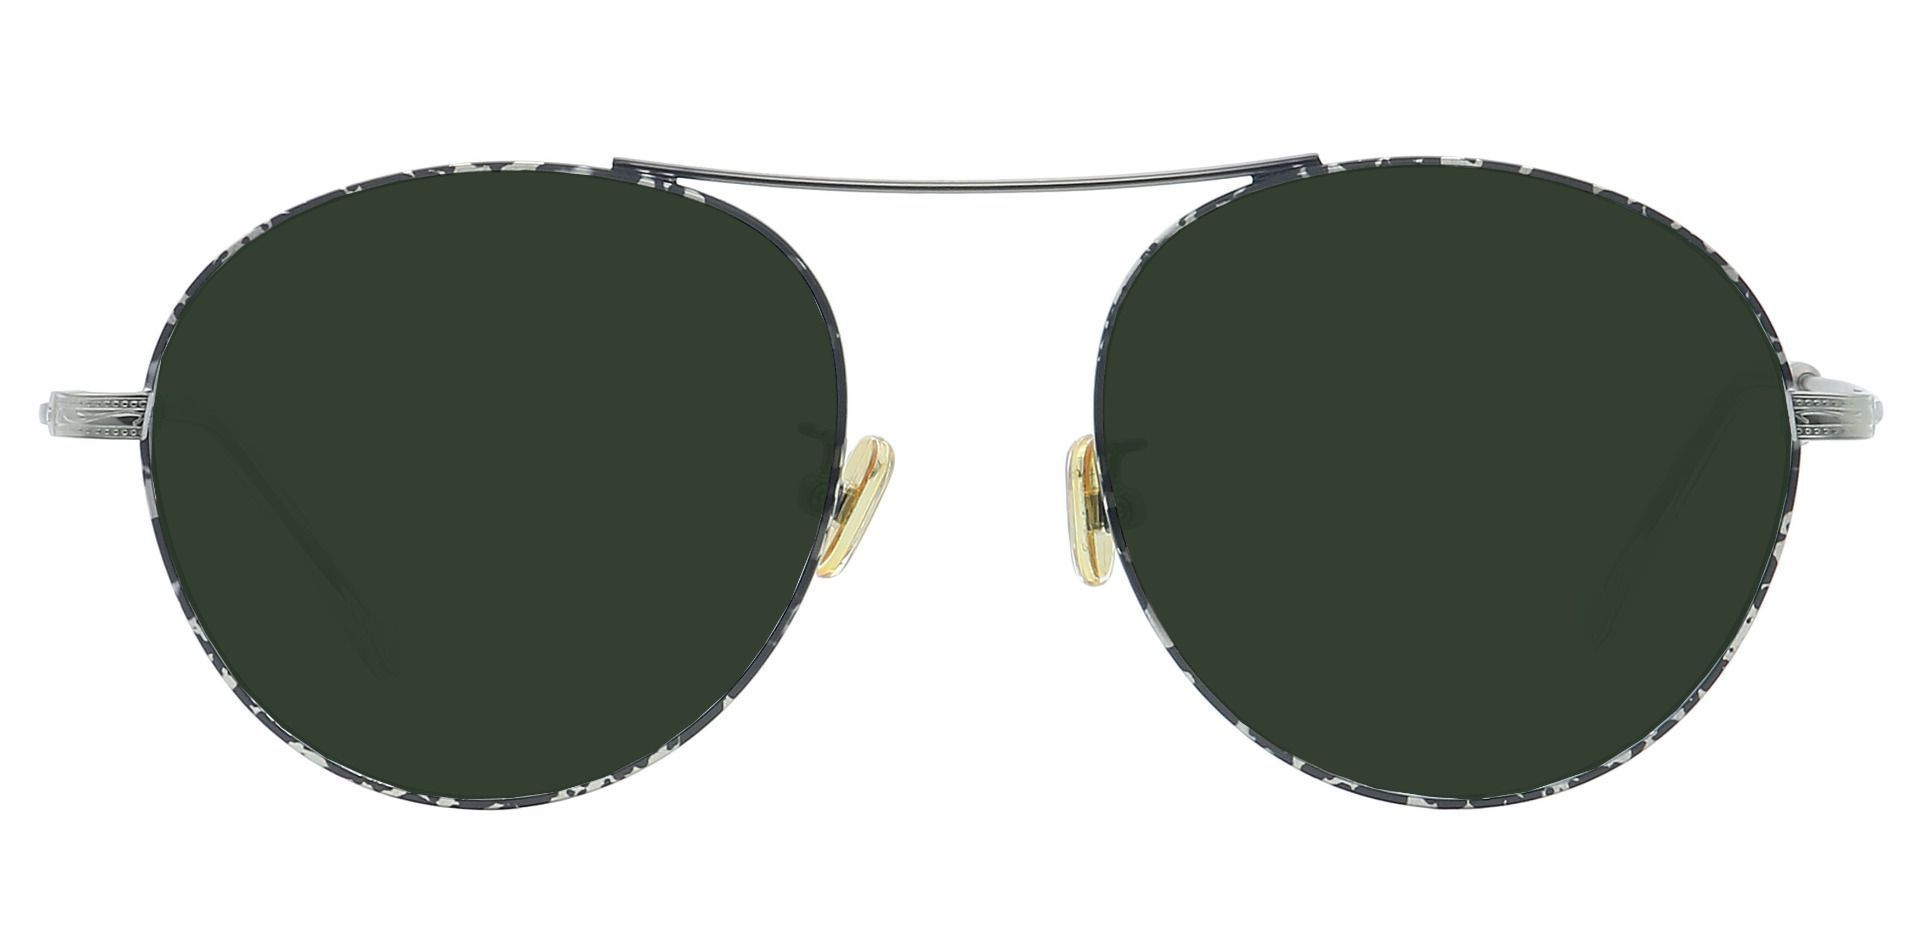 Finn Round Prescription Sunglasses - Gray Frame With Green Lenses